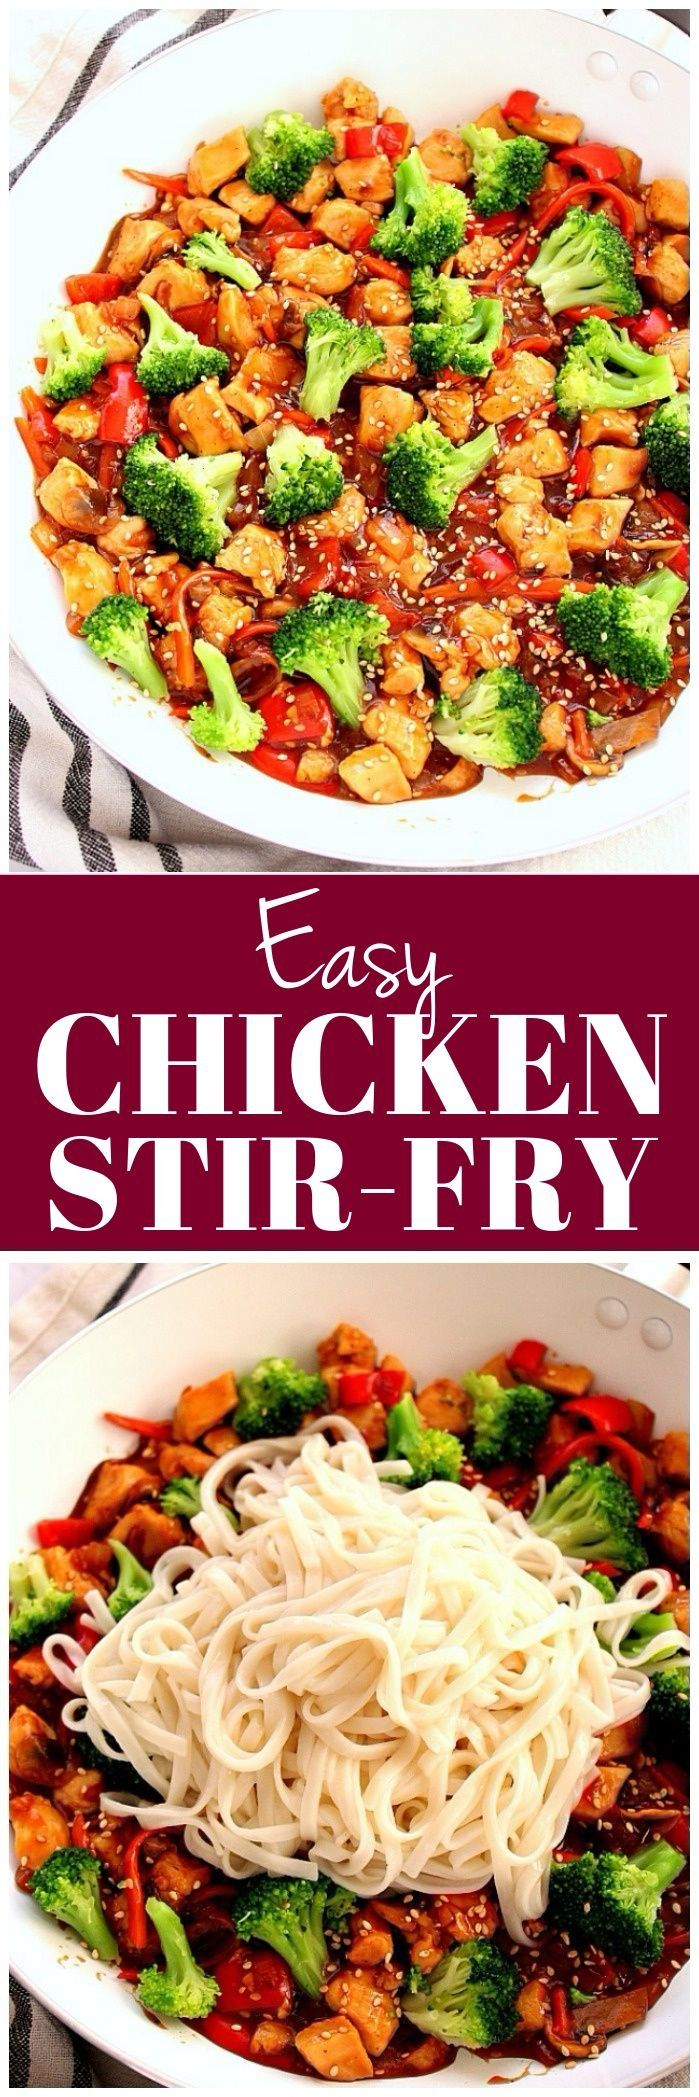 Easy Chicken Stir Fry Recipe - quick and easy vegetable and chicken stir fry with delicious teriyaki sauce. Perfect served with noodles or rice.